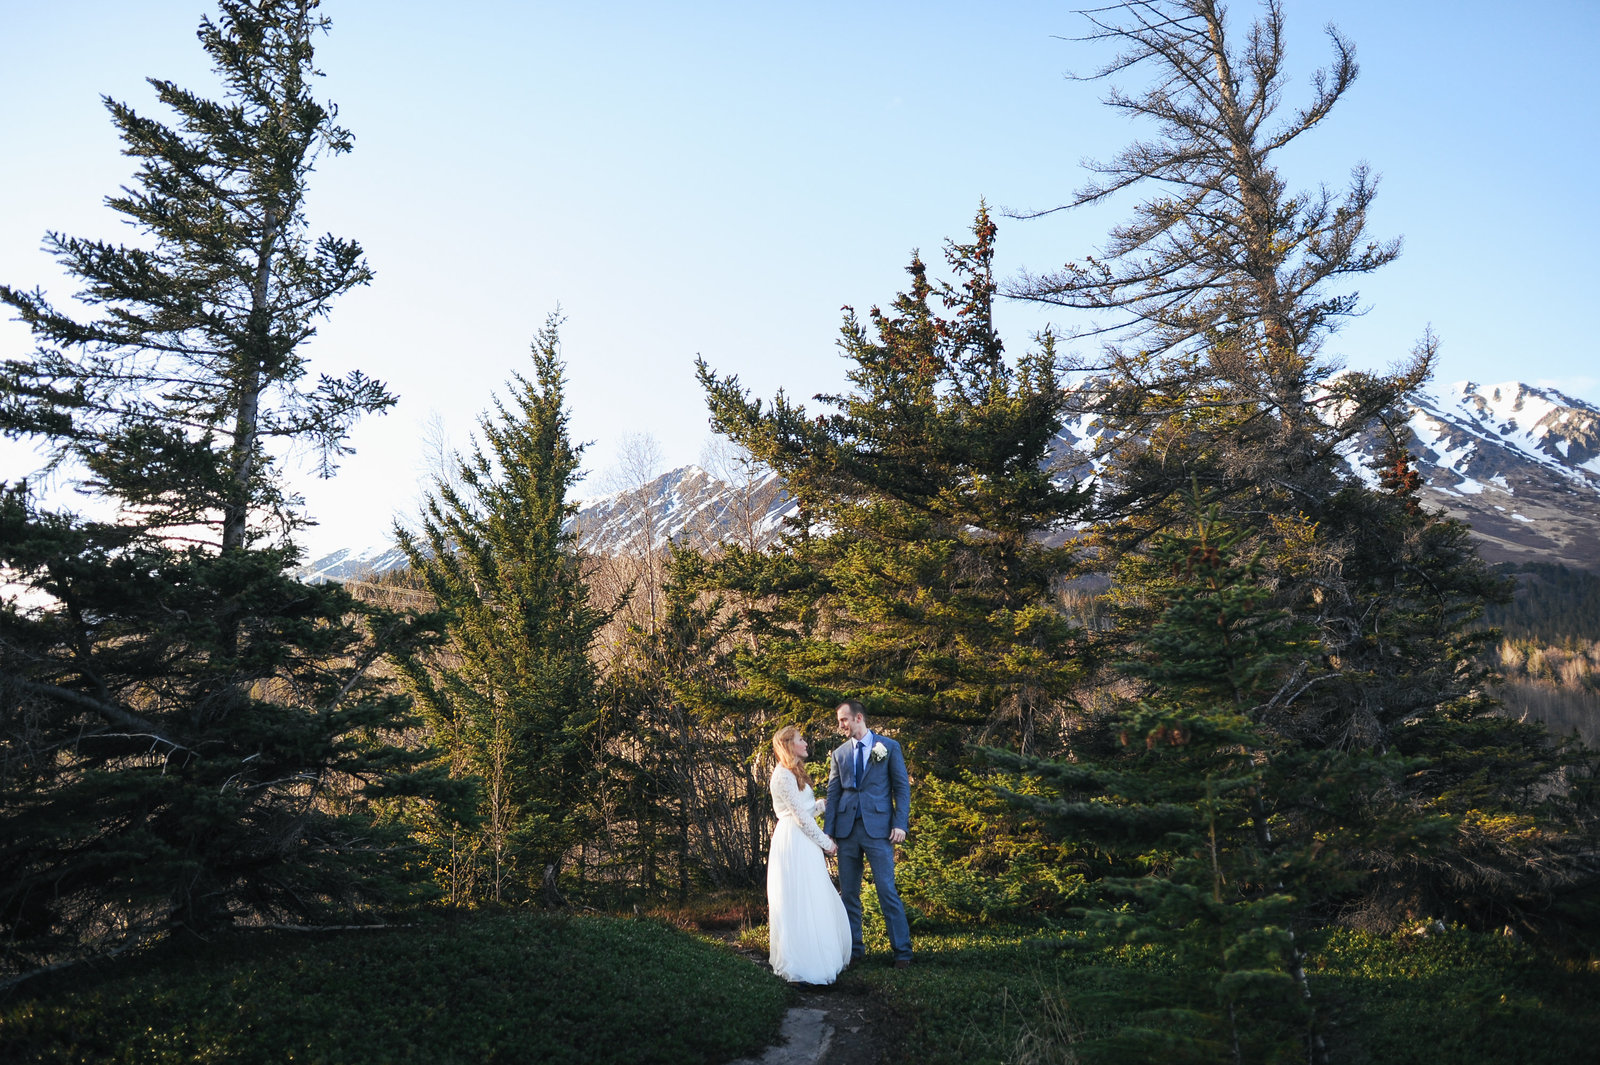 024_Erica Rose Photography_Anchorage Wedding Photographer